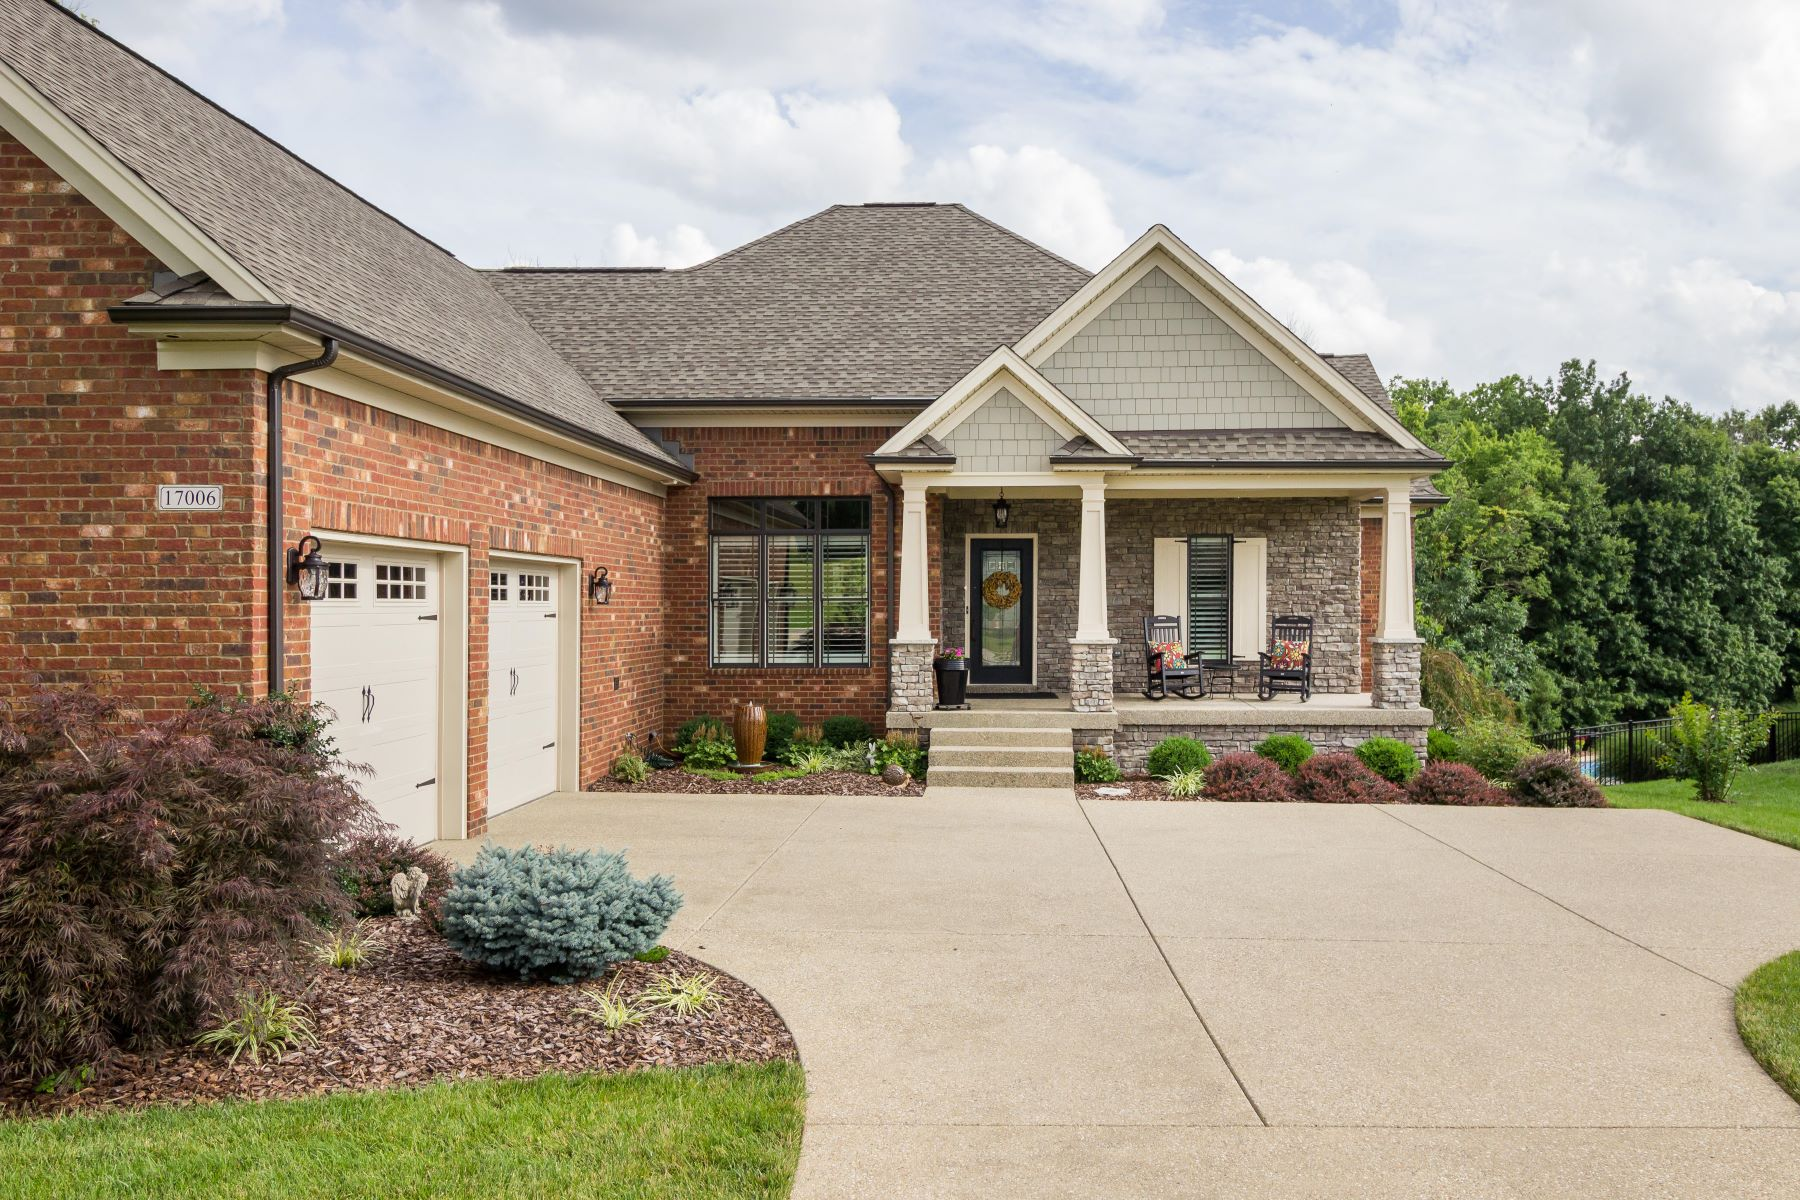 Single Family Home for Sale at 17006 Shakes Creek Drive Louisville, Kentucky 40023 United States